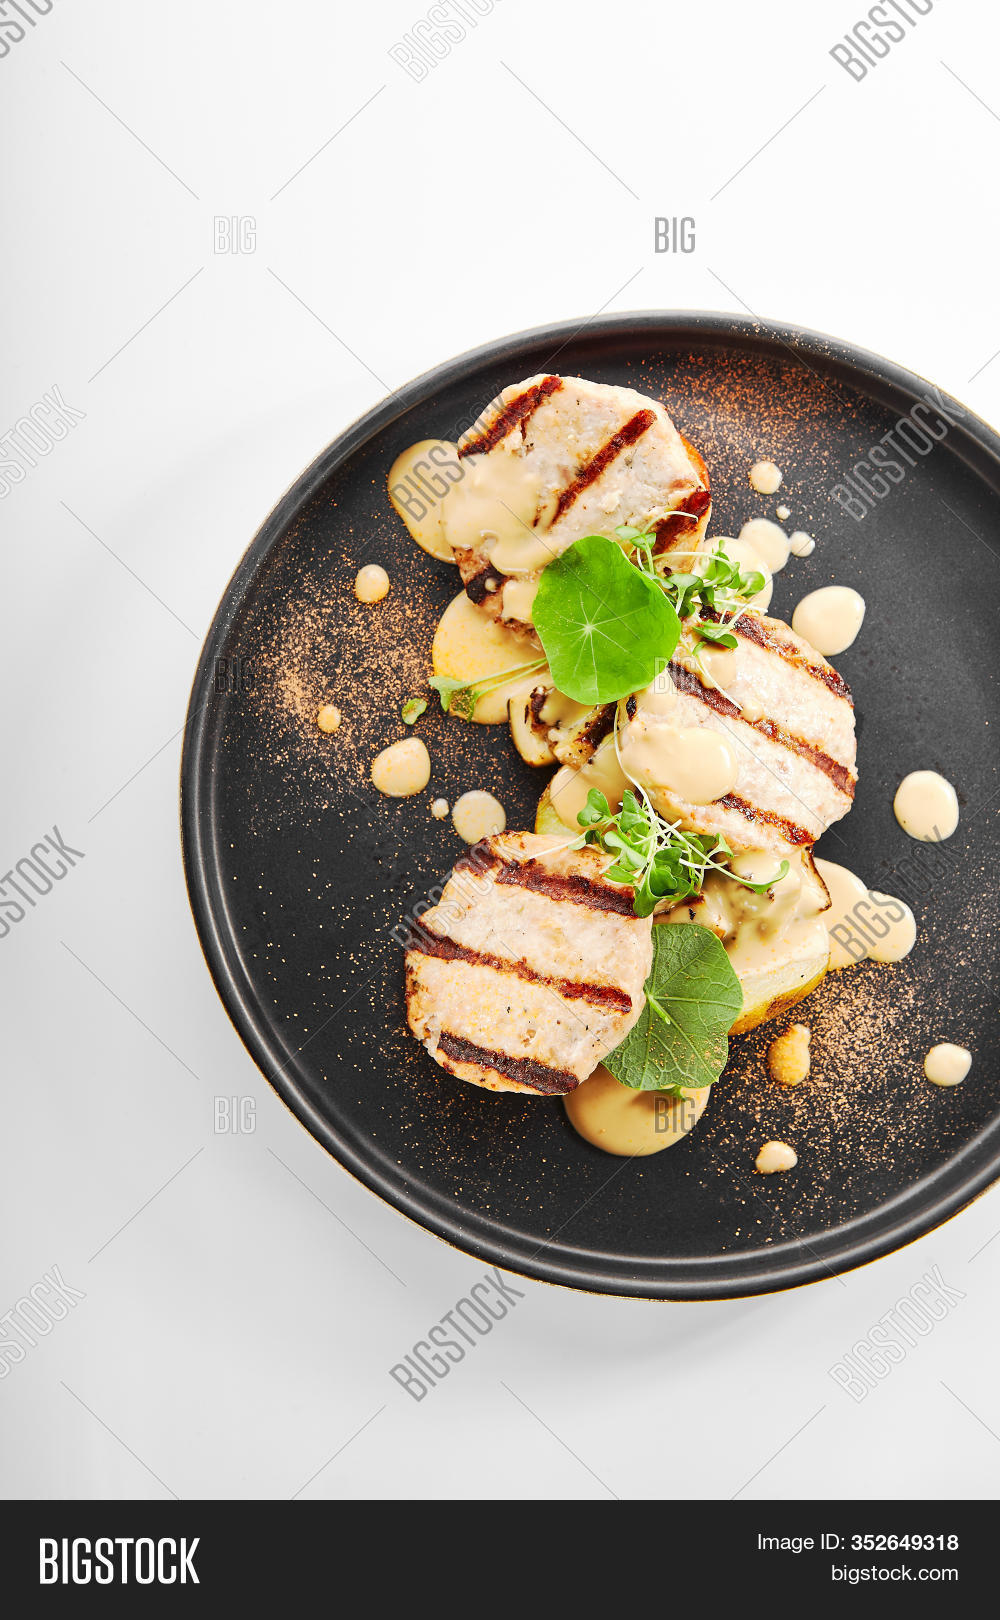 Fish Cakes Top View Image Photo Free Trial Bigstock